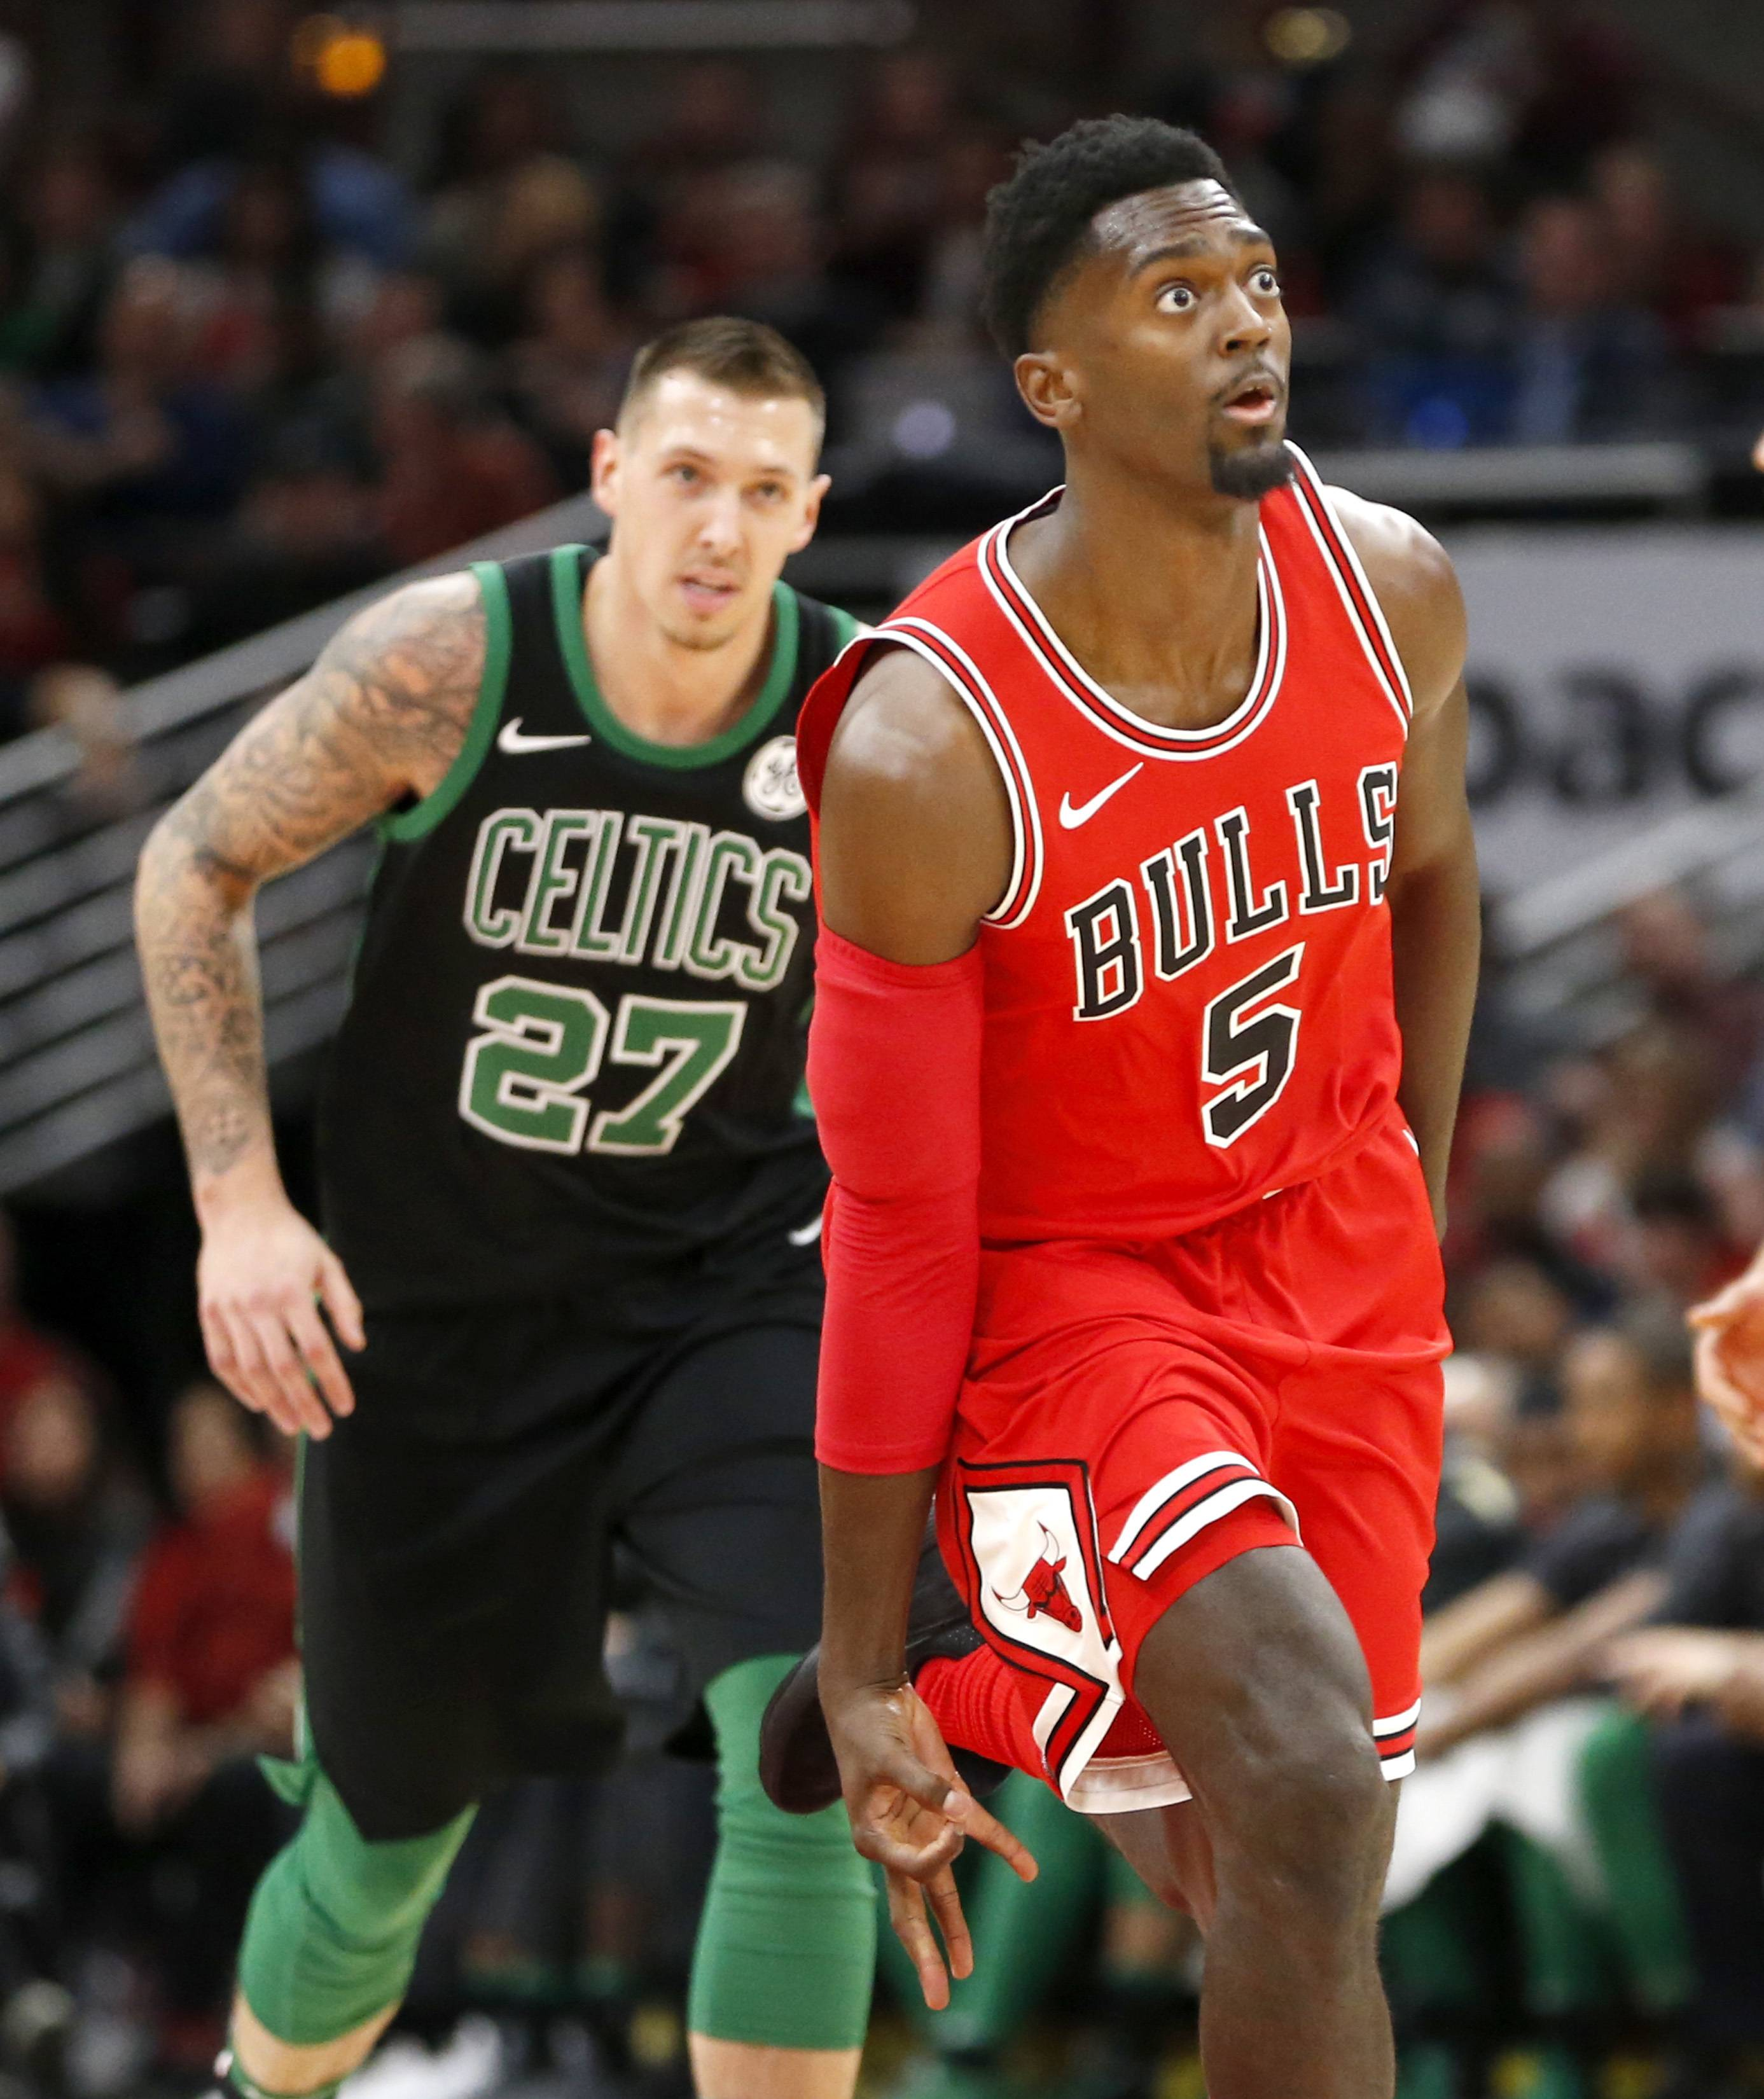 Chicago Bulls' Bobby Portis signals after his three-point basket as Boston Celtics' Daniel Theis follows during the first half of an NBA basketball game Monday, Dec. 11, 2017, in Chicago. (AP Photo/Charles Rex Arbogast)